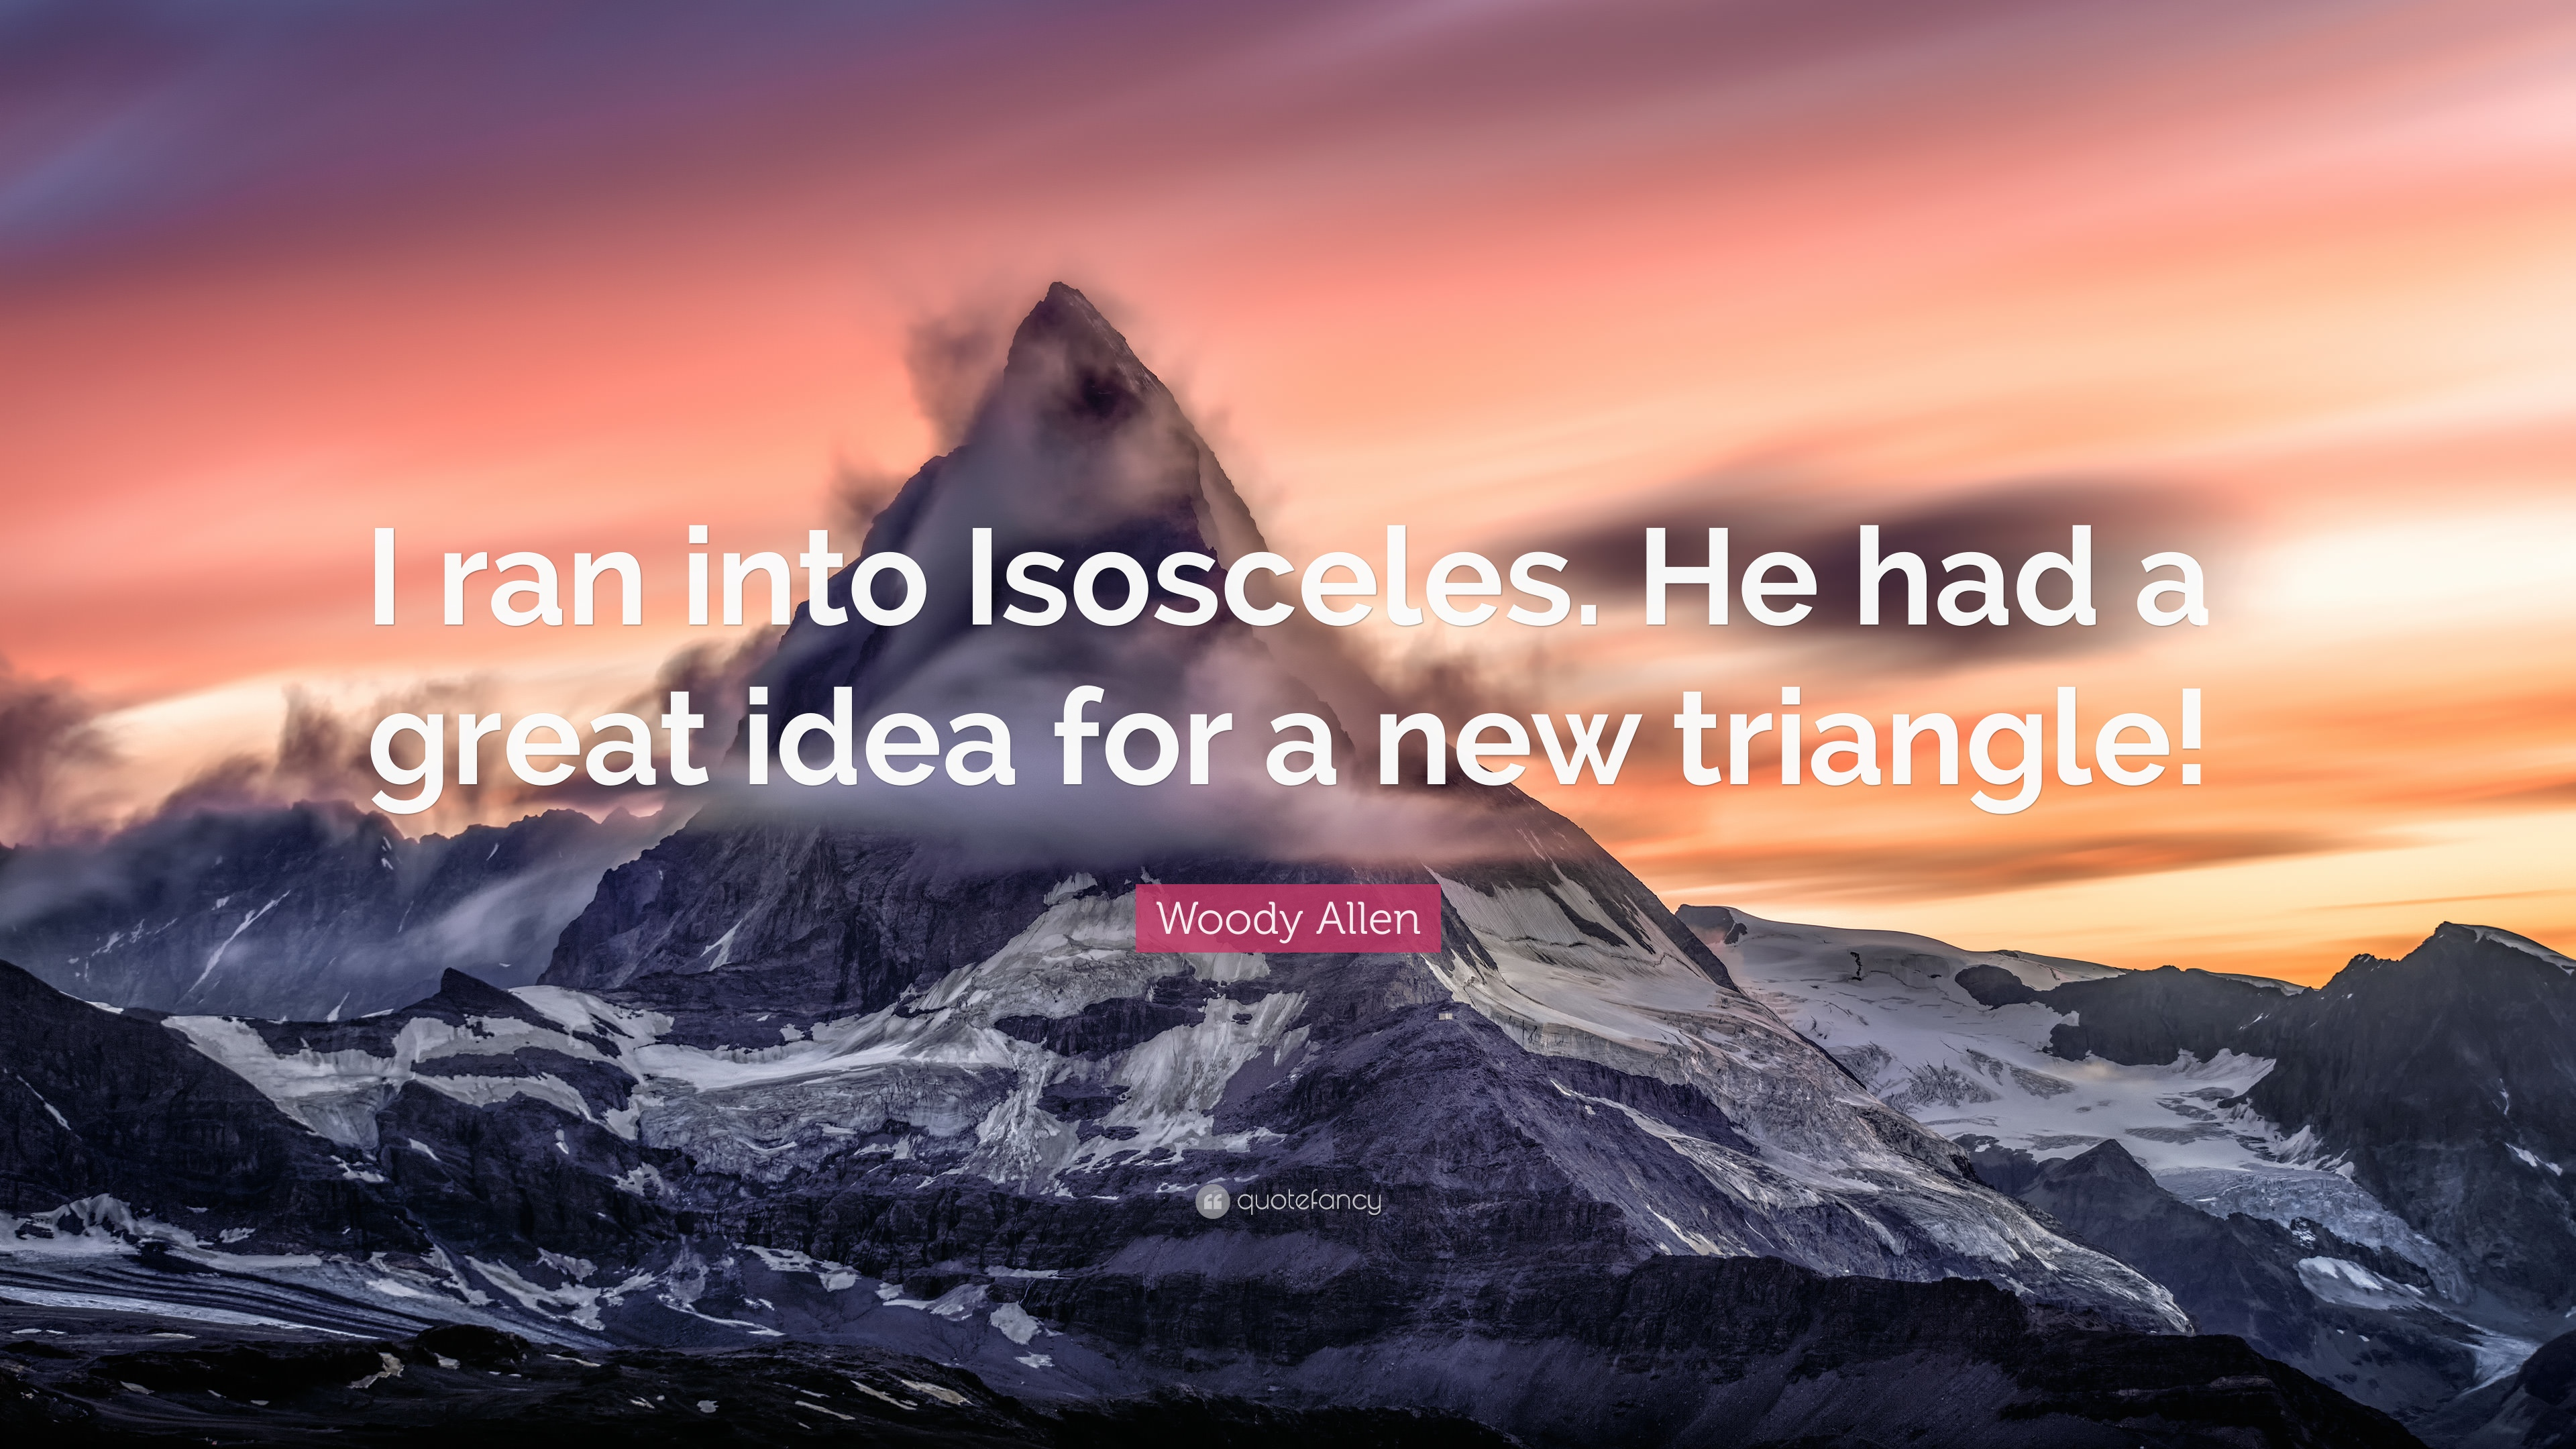 Good Wallpaper Mountain Triangle - 1972823-Woody-Allen-Quote-I-ran-into-Isosceles-He-had-a-great-idea-for-a  Snapshot_839138.jpg